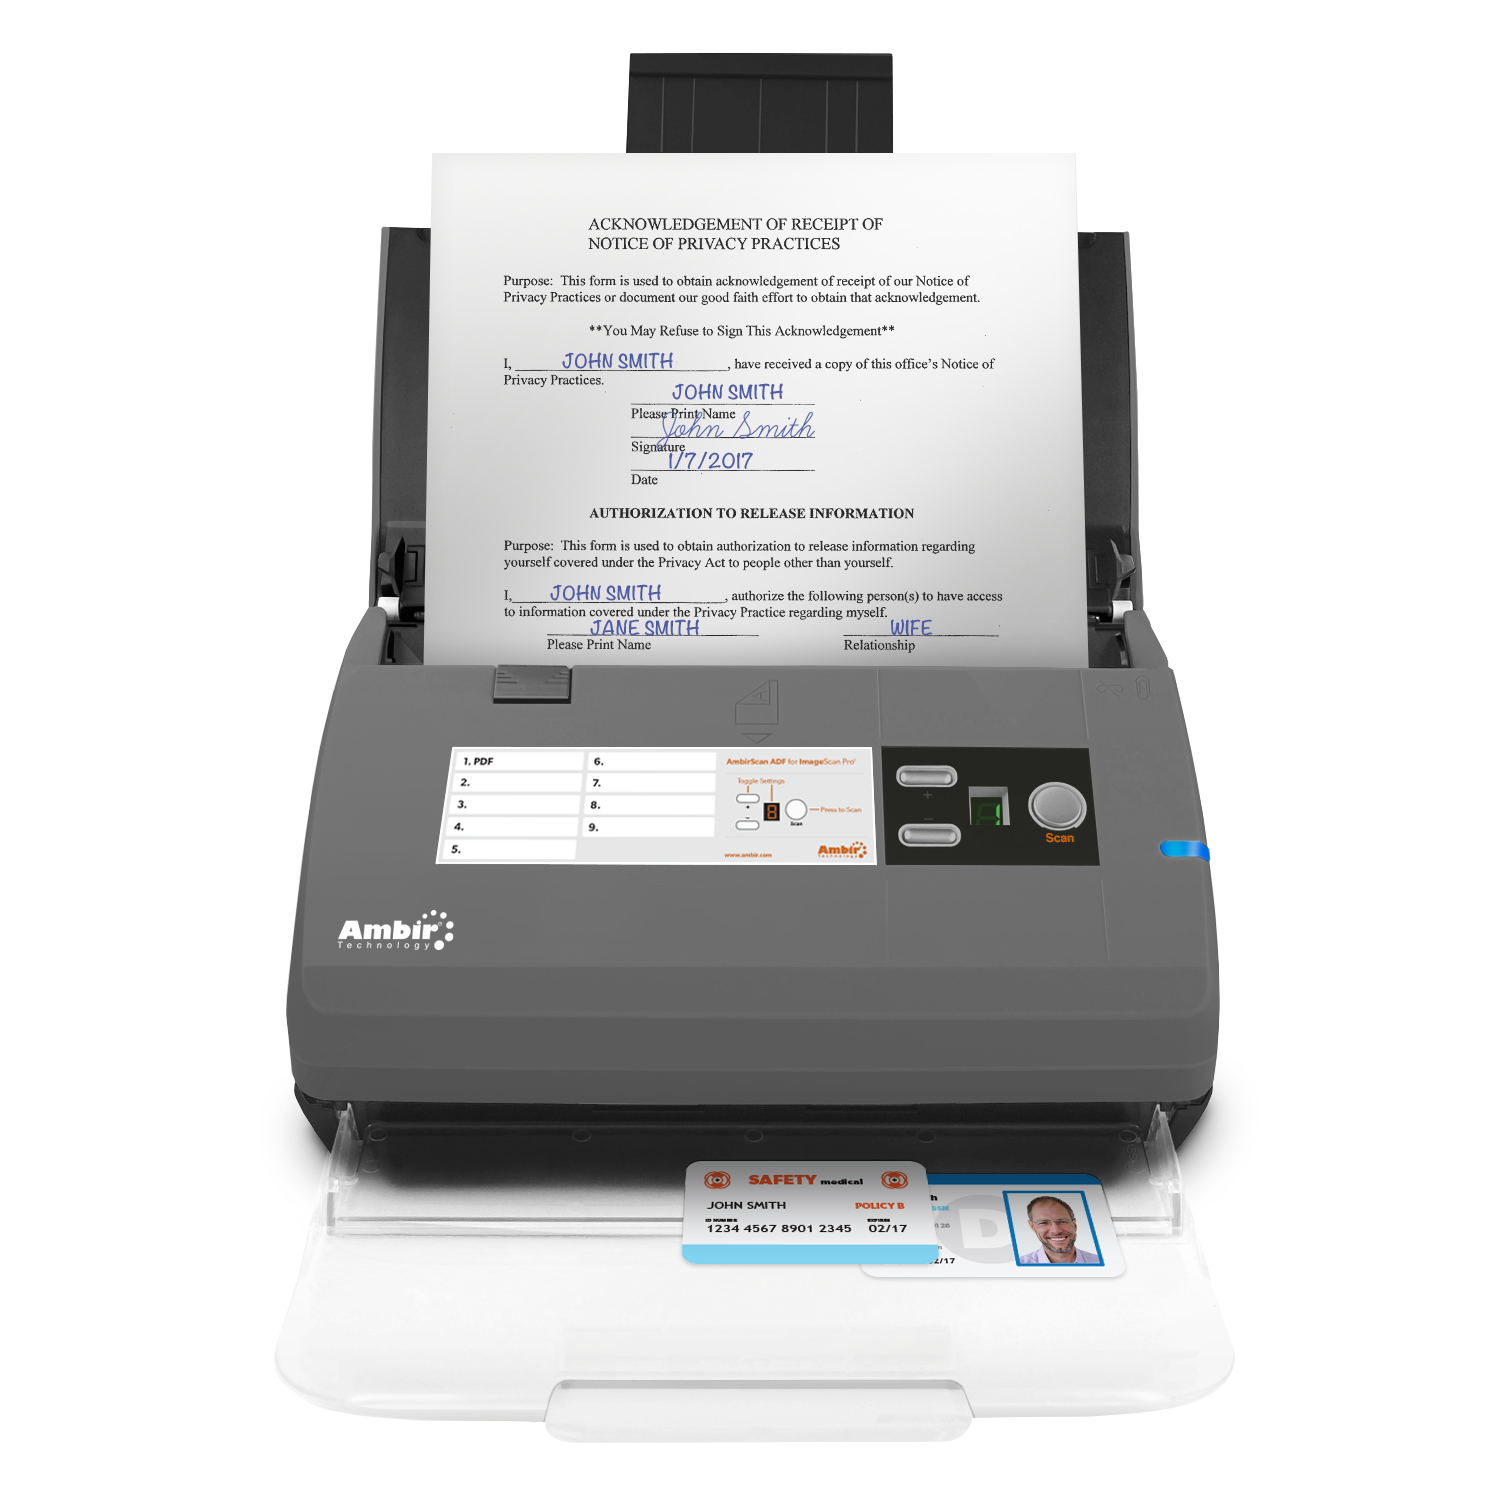 Ambir ImageScan Pro PS667 Pass Through Scanner ~ Card//ID